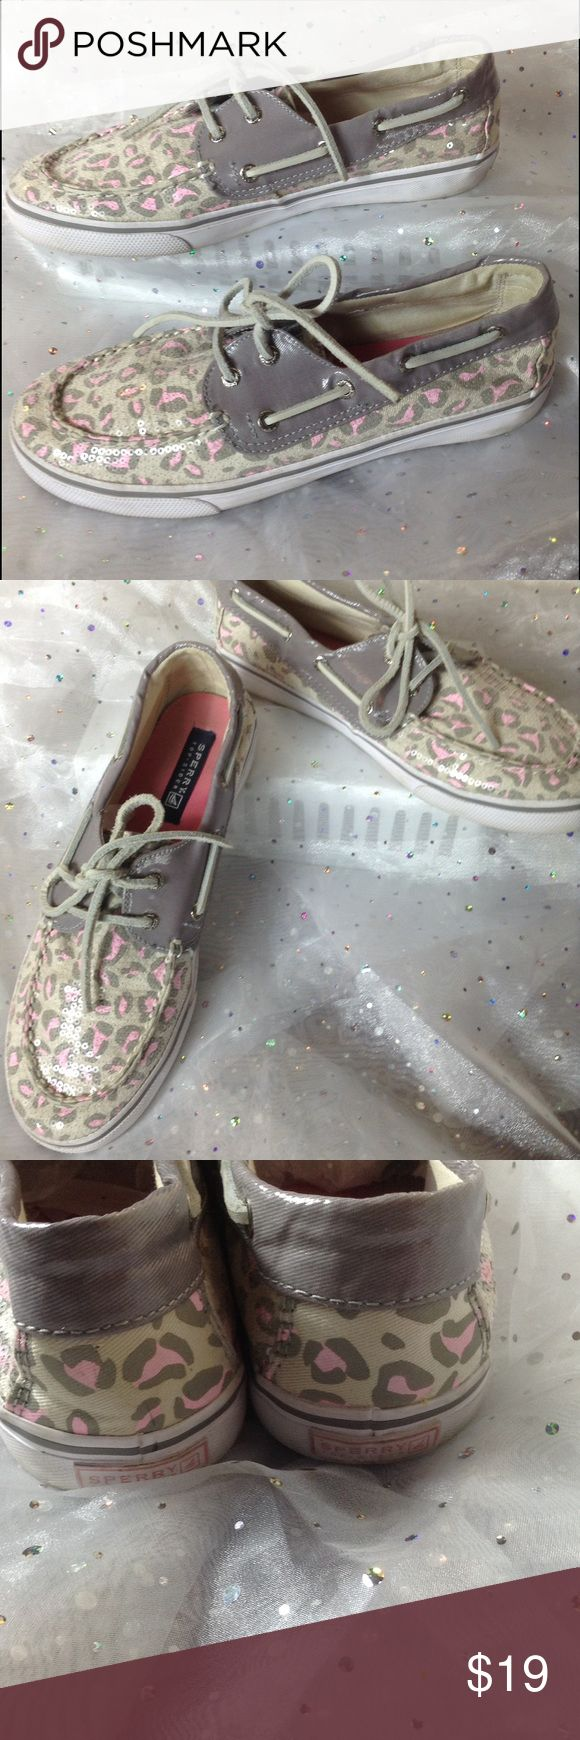 🎀 GIRLS Sperry Sequin Leopard Top-Siders Let loose and get wild!  Light gray with pink leopard print top siders with a top layer of sequins.  Insole is nice and springy foam.  Great pre-loved condition!  Also fits women's size 7.5. Sperry Top-Sider Shoes